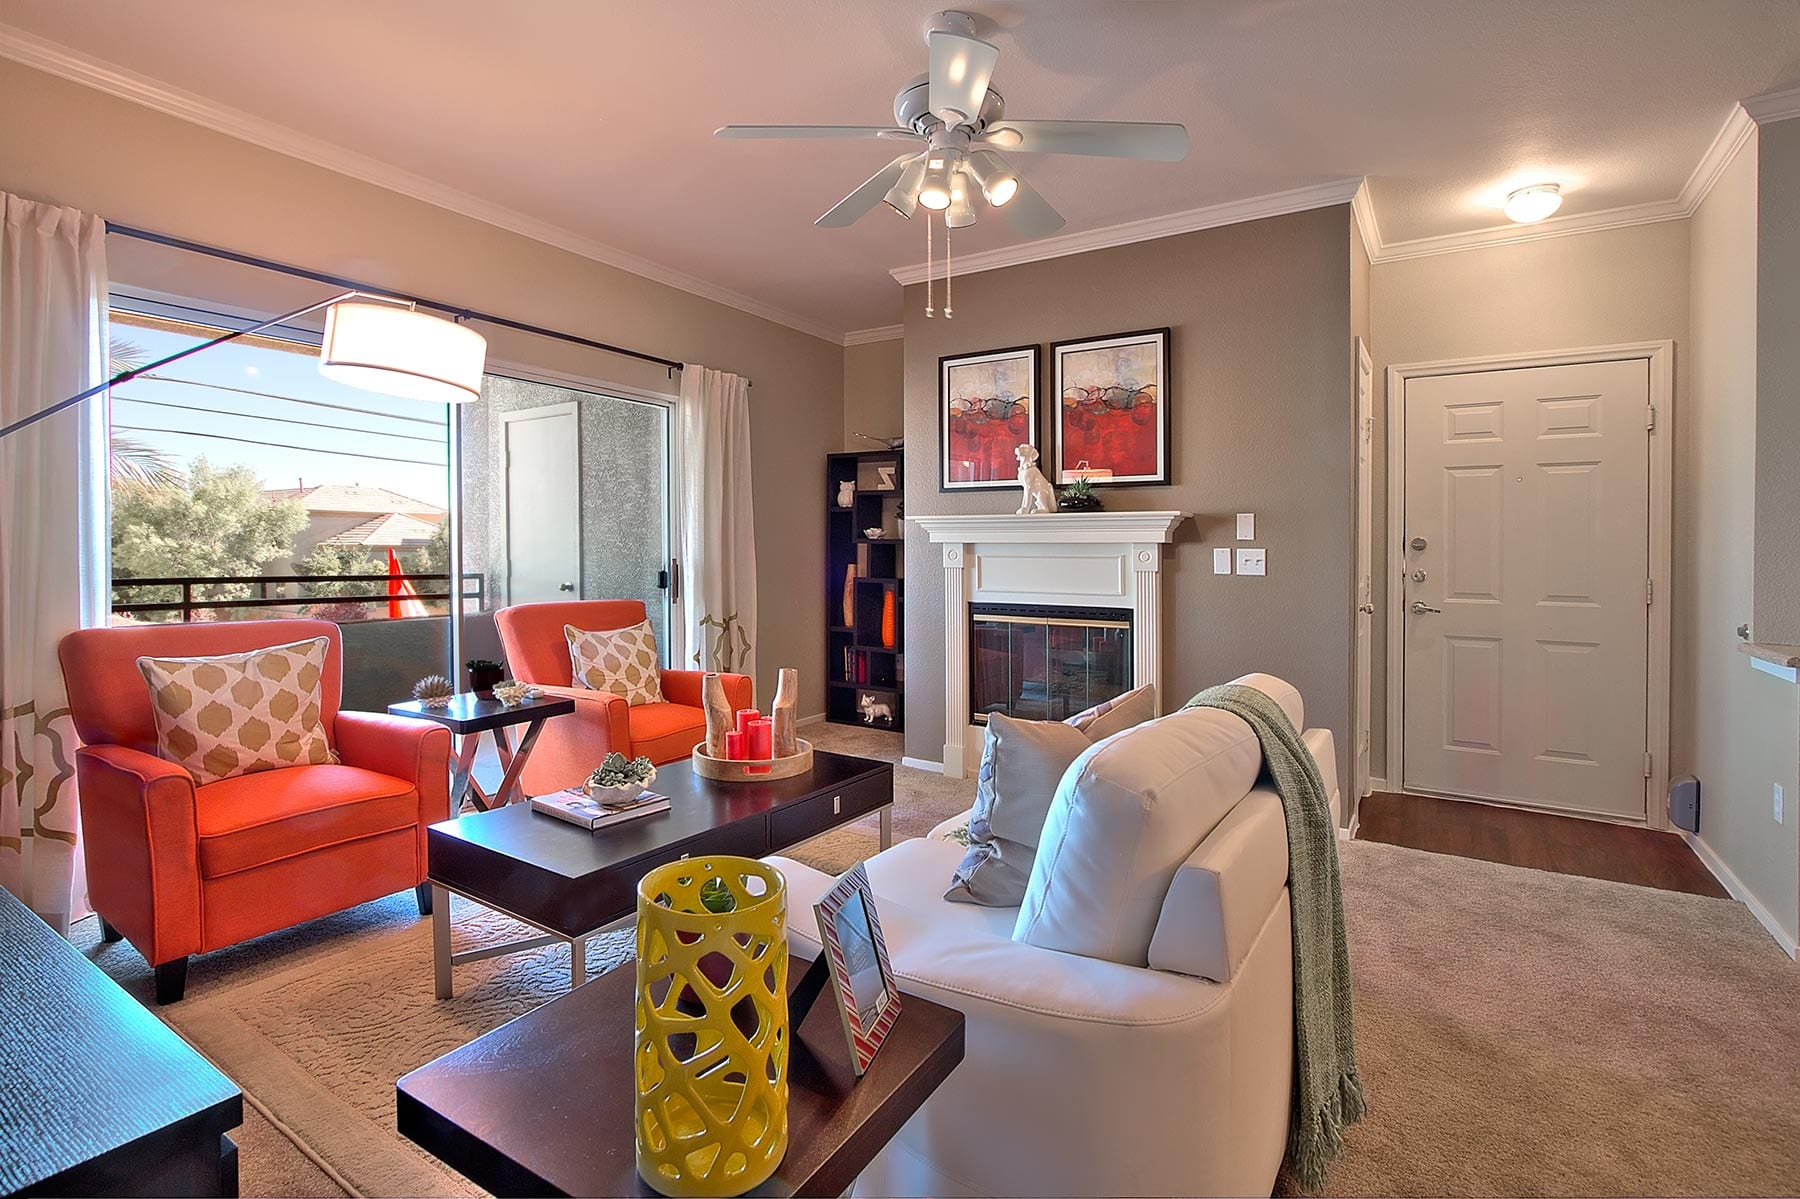 A comfortable living room with plush furniture, soft carpeting, and a bright, wide patio door.